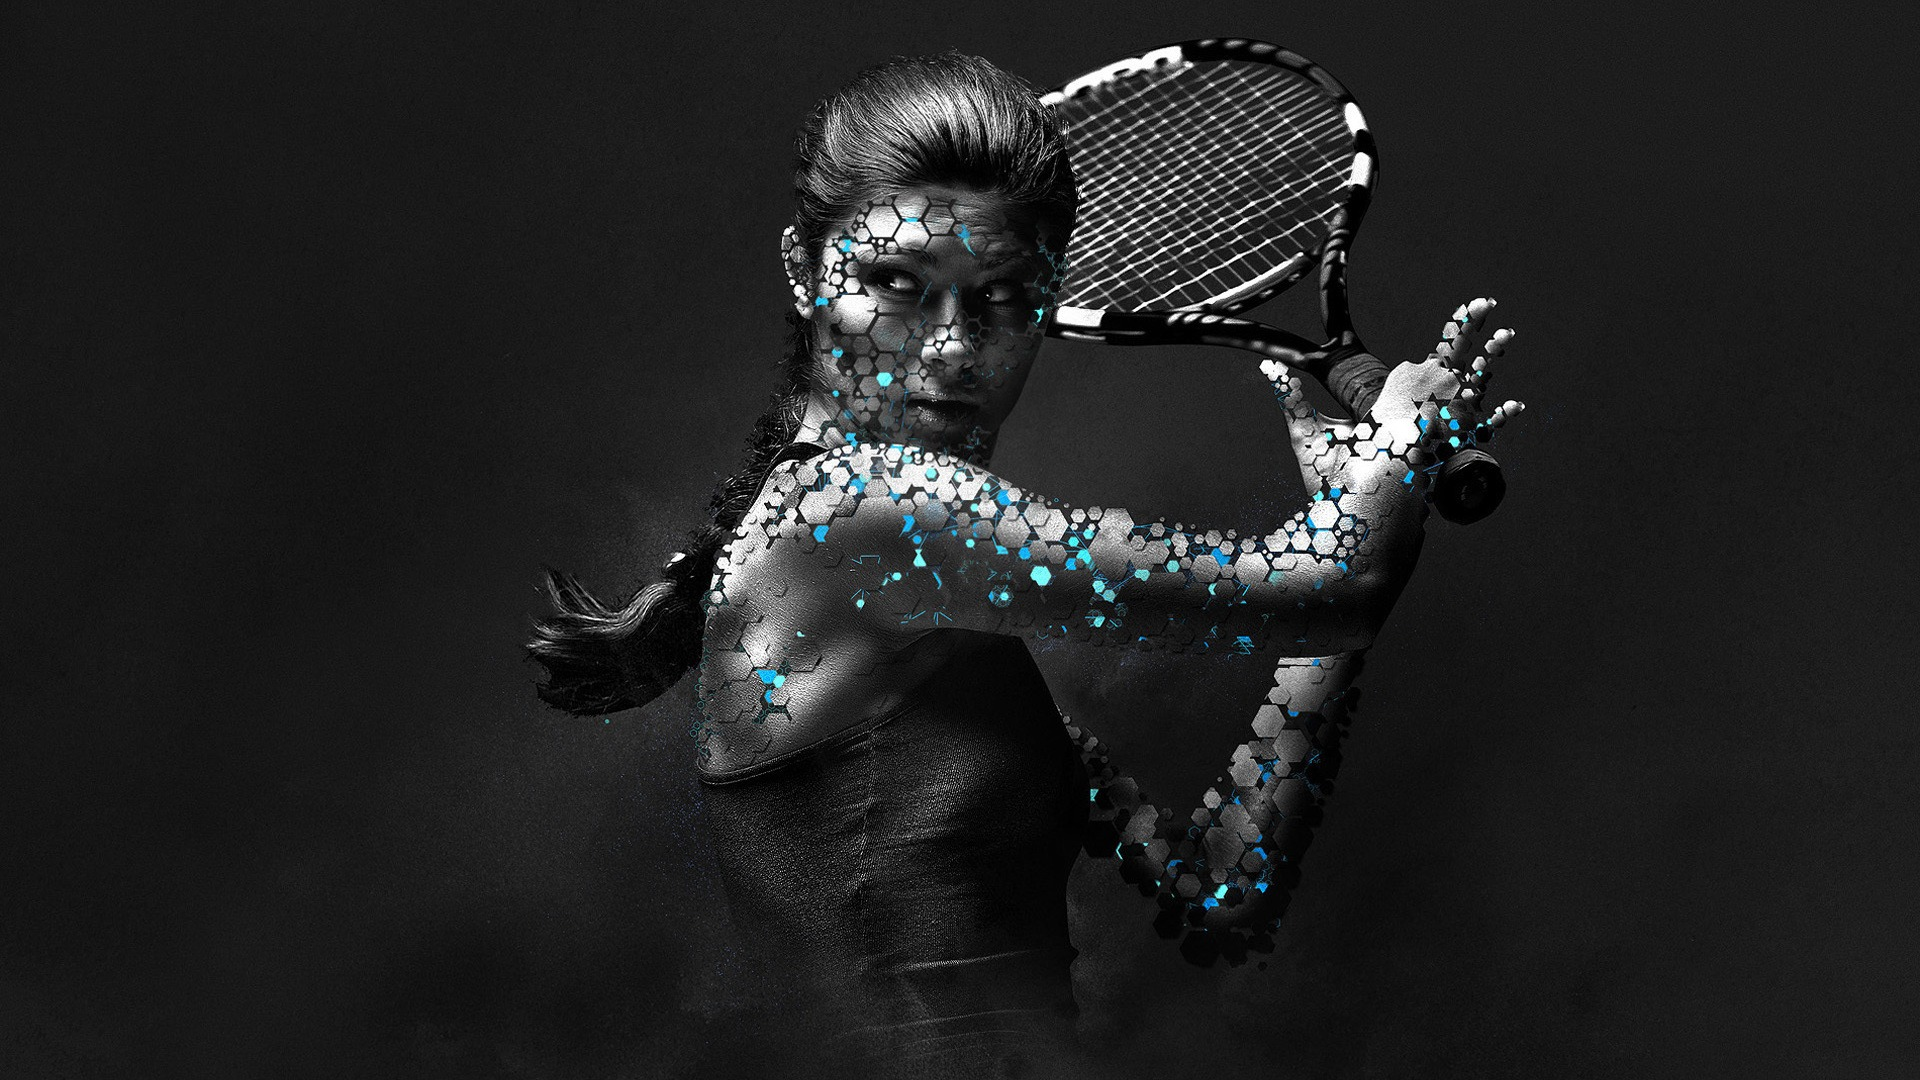 Woman Tennis Player 1080p HD Wallpaper Sports Places to Visit